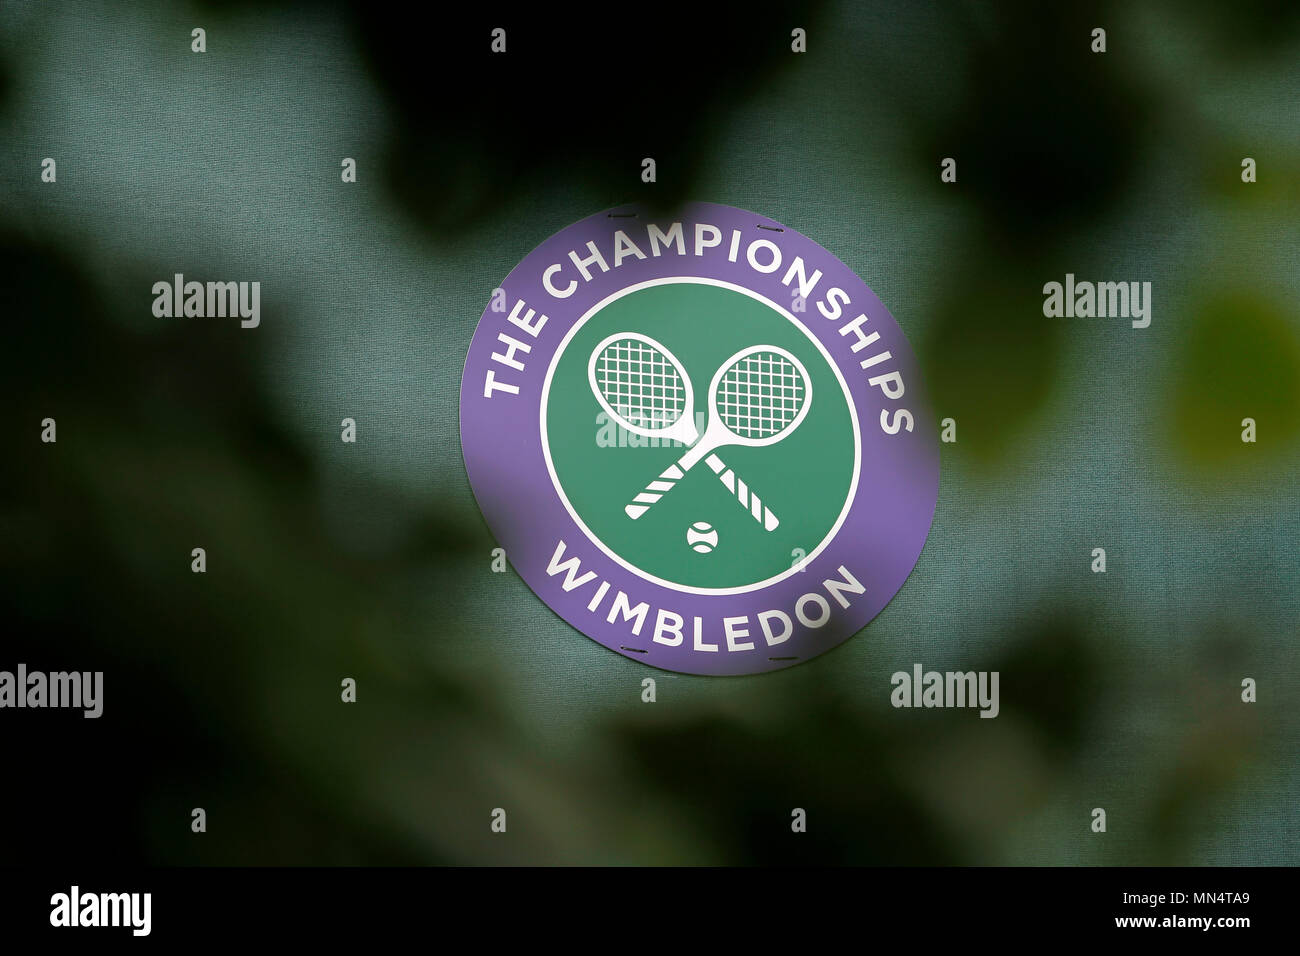 London, 3 July, 2017 - Wimbledon:  Sign at the All England Club on the opening day of Wimbledon - Stock Image